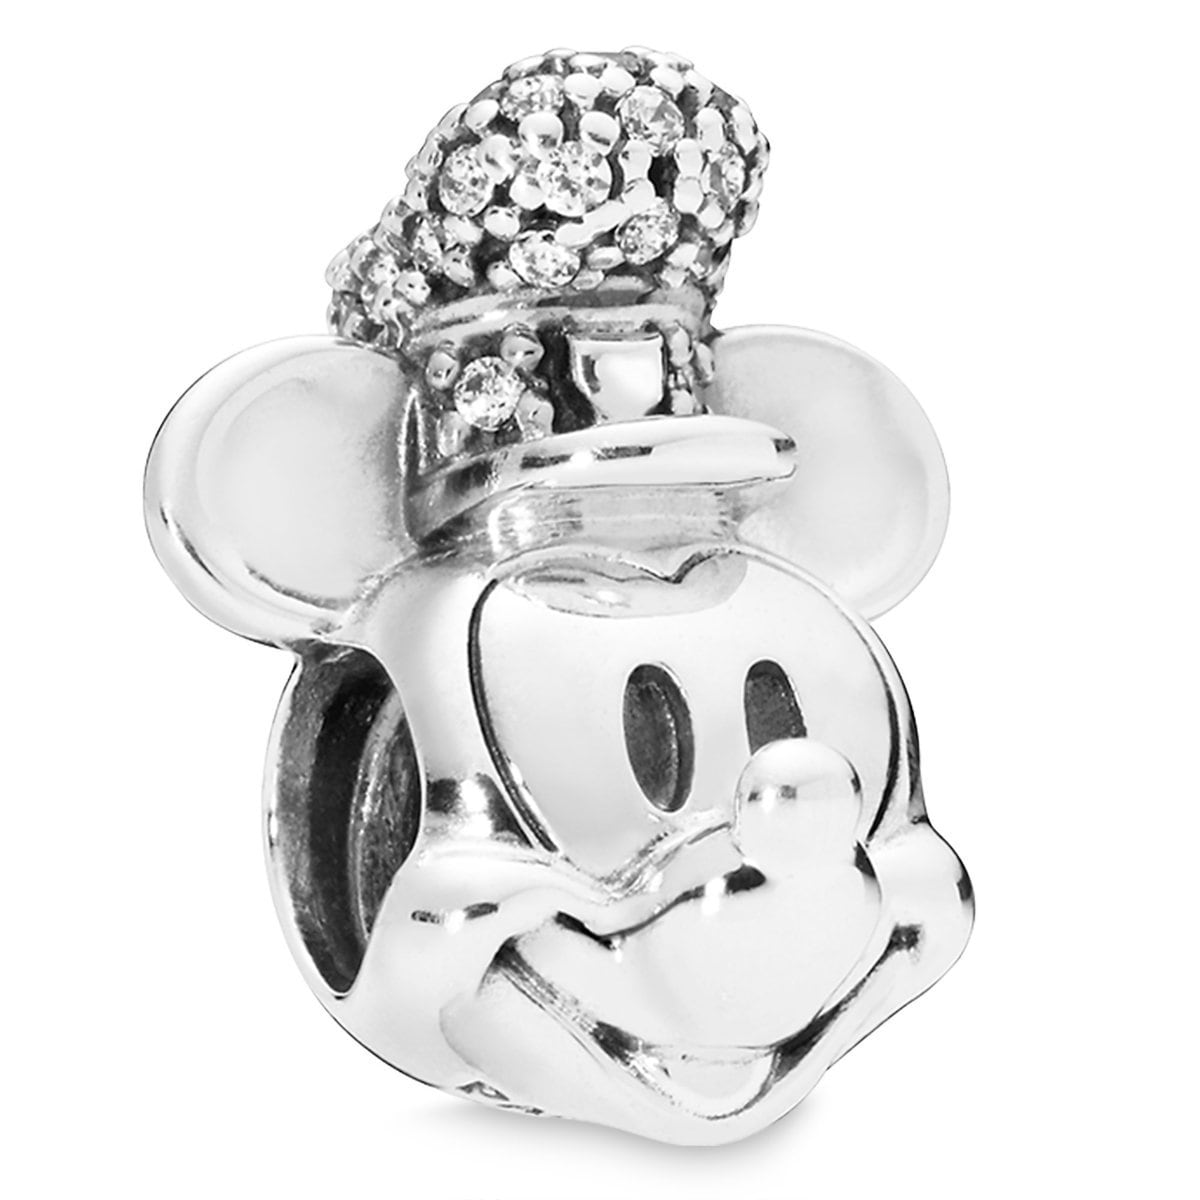 406c24098 Product Image of Mickey Mouse as Steamboat Willie Charm by Pandora Jewelry  # 1